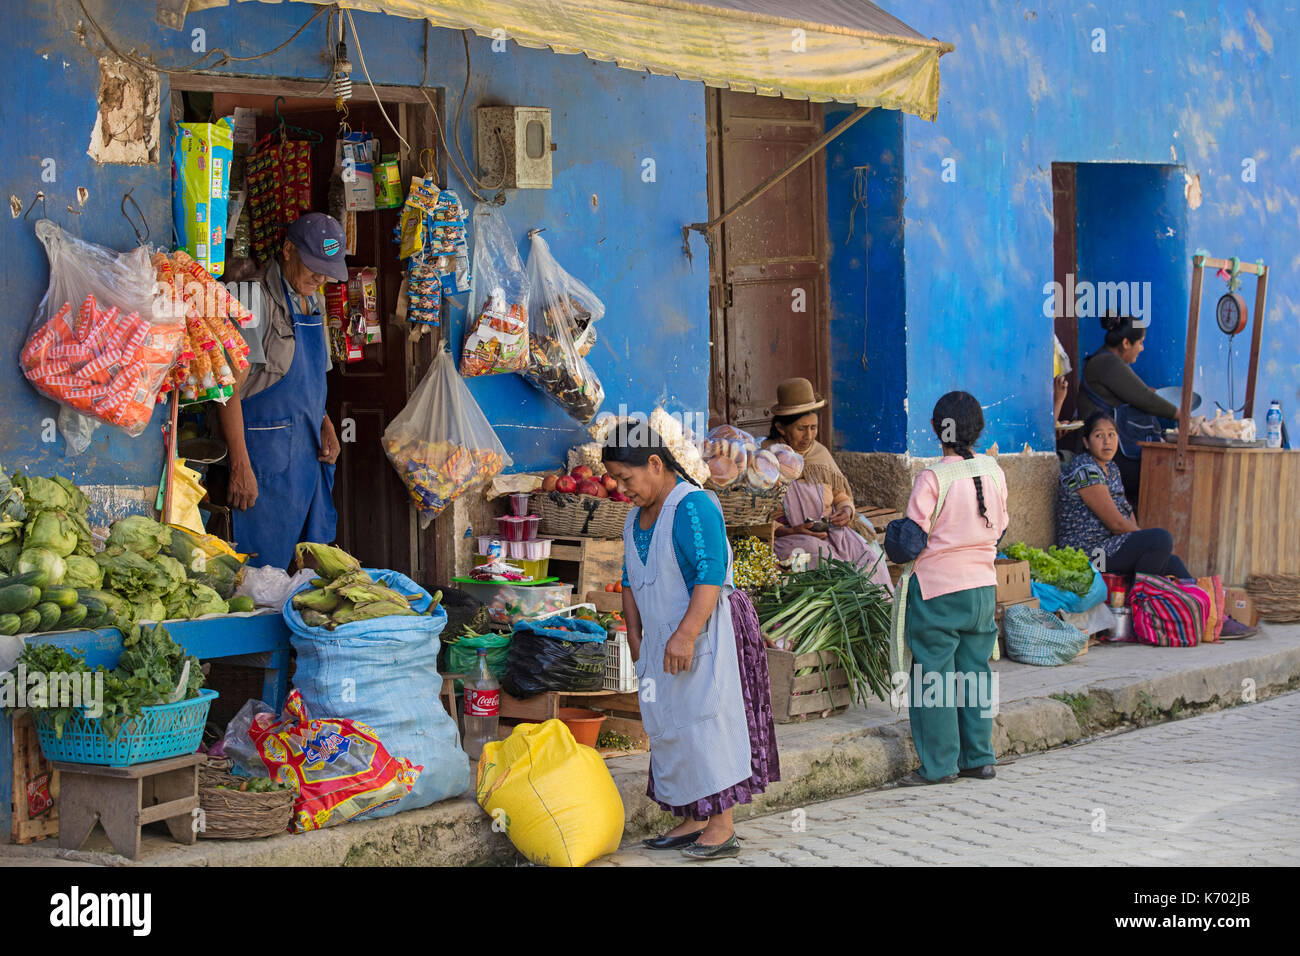 Vegetables for sale at greengrocer's shop / greengrocery in Coroico, town in Nor Yungas Province, La Paz Department of western Bolivia - Stock Image